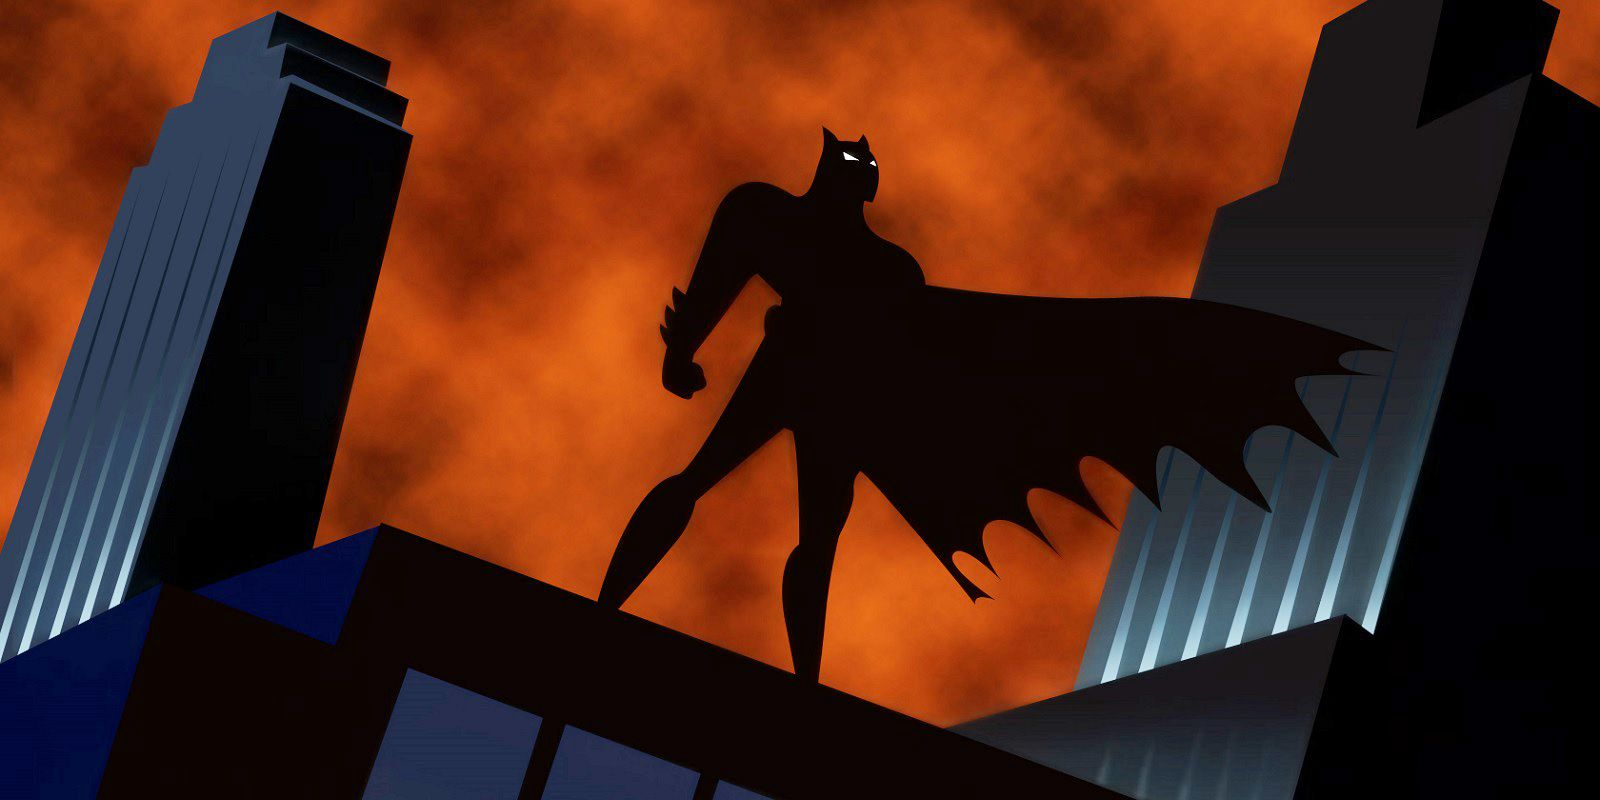 The Batman: The Animated Series Villain Too Hot for Fox Kids